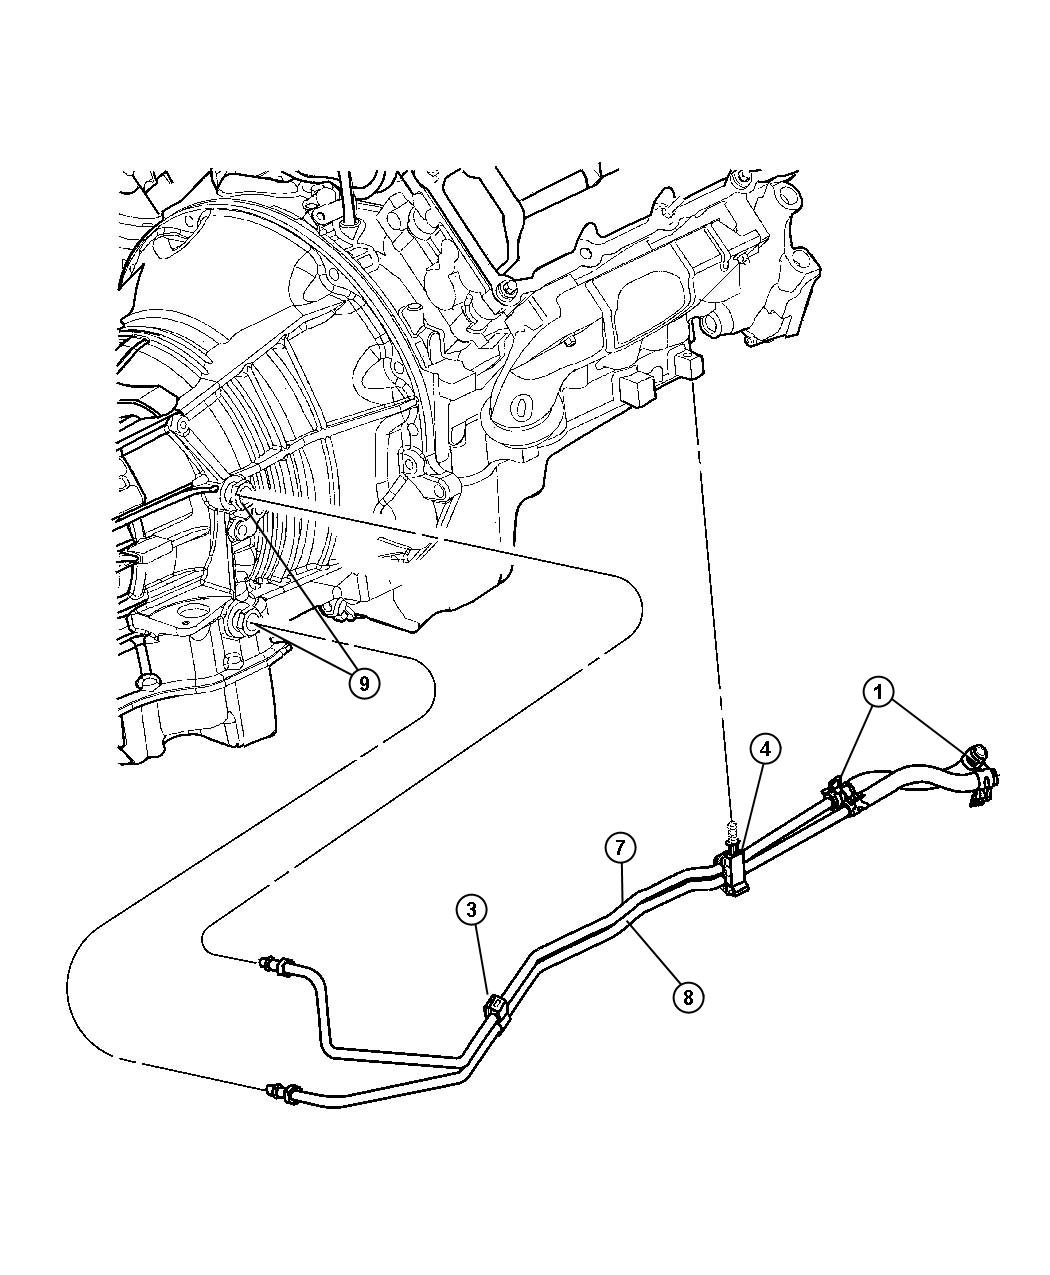 Jeep Brakes Diagram Jeep Electrical Wiring Diagrams Regarding 1996 Jeep Cherokee Parts Diagram moreover Wrangler A C And Heating Plumbing Parts furthermore TH8u 15201 as well 2004 Dodge Durango Serpentine Belt Diagram further Jeep Suspension Parts And Accessories. on jeep liberty diagram